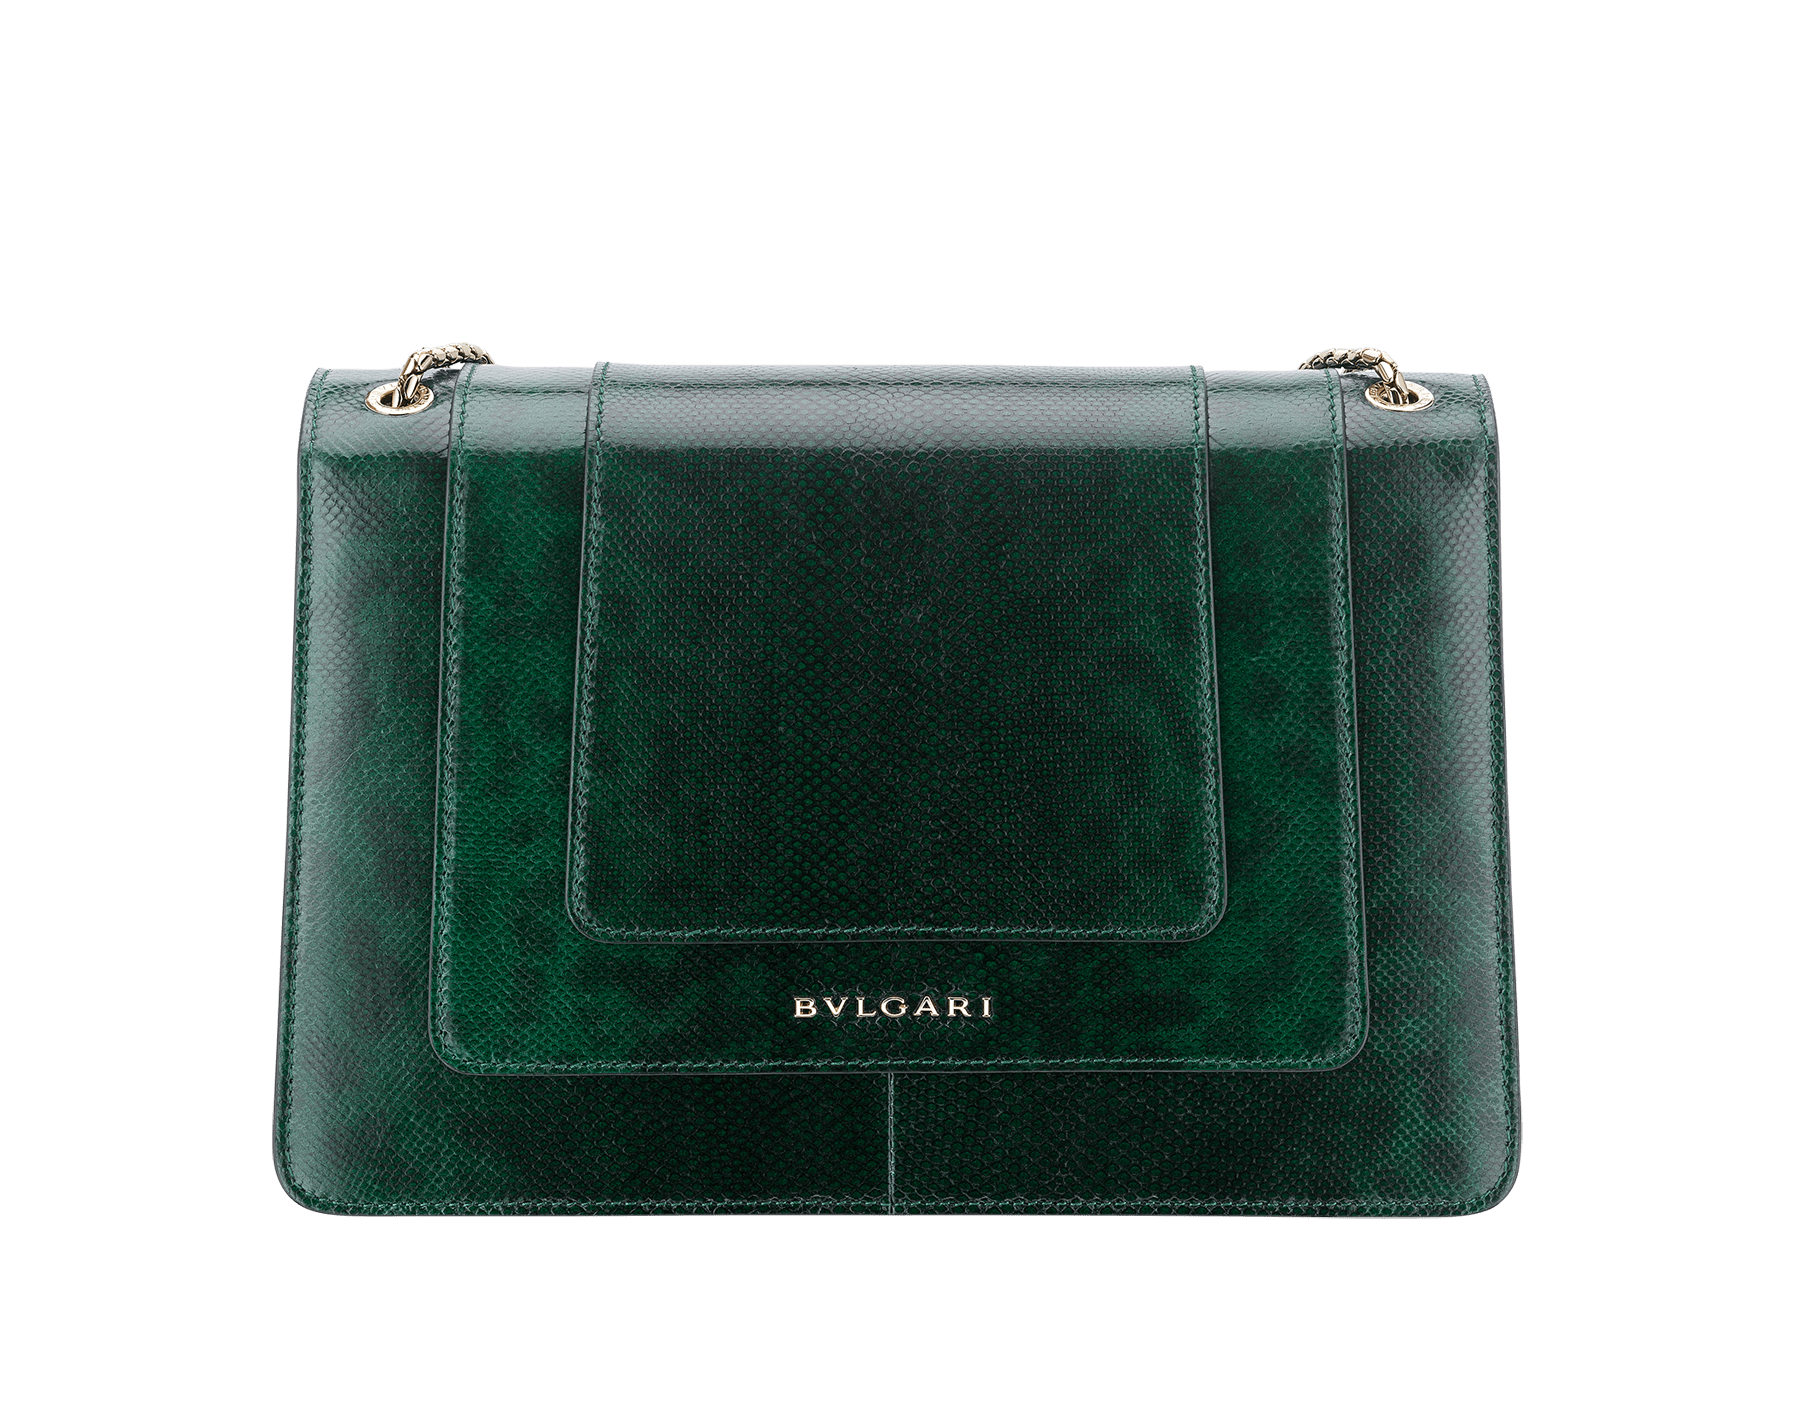 Flap cover bag Serpenti Forever in roman garnet shiny karung skin. Brass light gold plated tempting snake head closure in shiny black and white enamel, with eyes in green malachite. 521-SK image 3